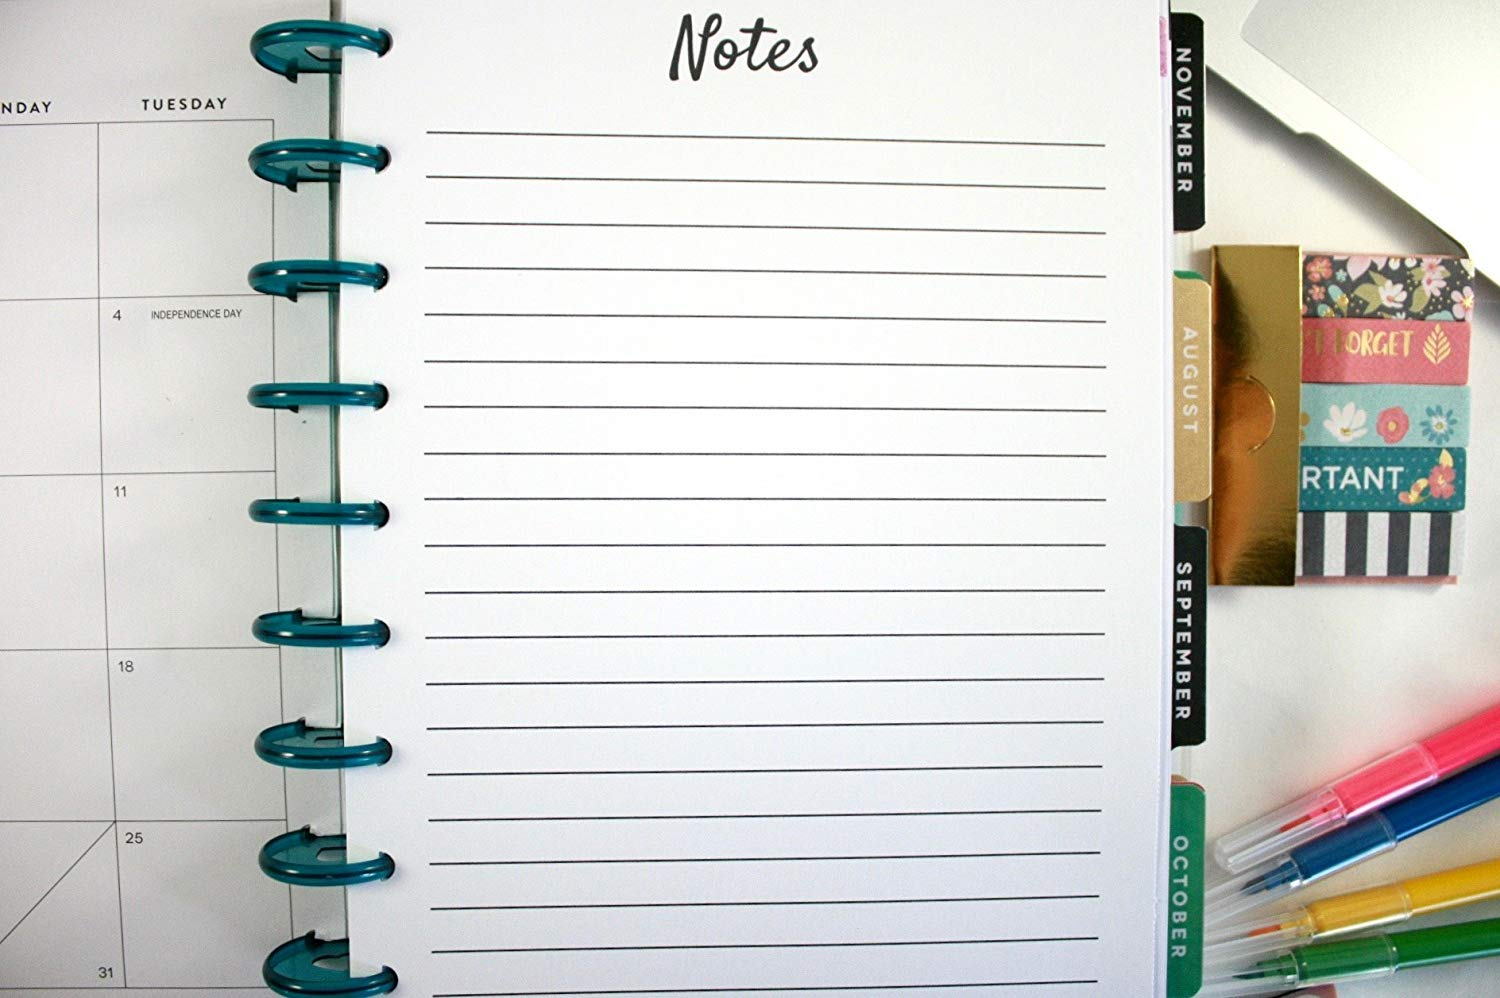 The Classic Happy Planner Refill Pages, Classic Happy Planner Notes Refills, Pre-punched Happy Planner Inserts, Pre-punched Notes Refills